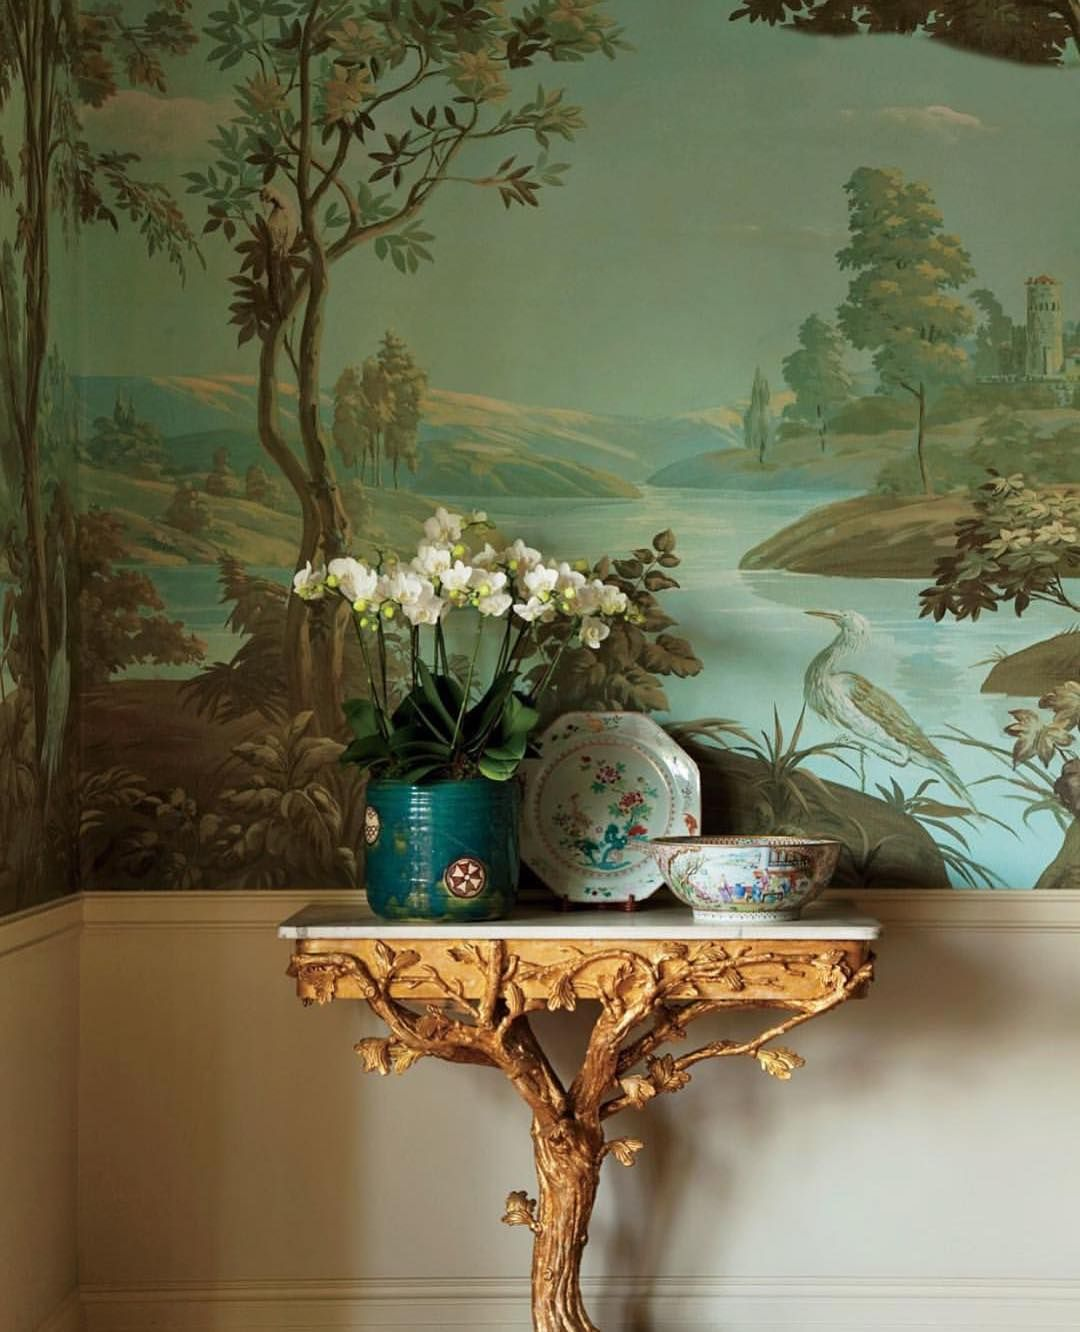 Leahoconnelldesign On Instagram Hand Painted Scenic Wall Covering Gilt Wood Console And Chinese Export Porcelain For Th In 2020 Decor Decor Inspiration Chinoiserie